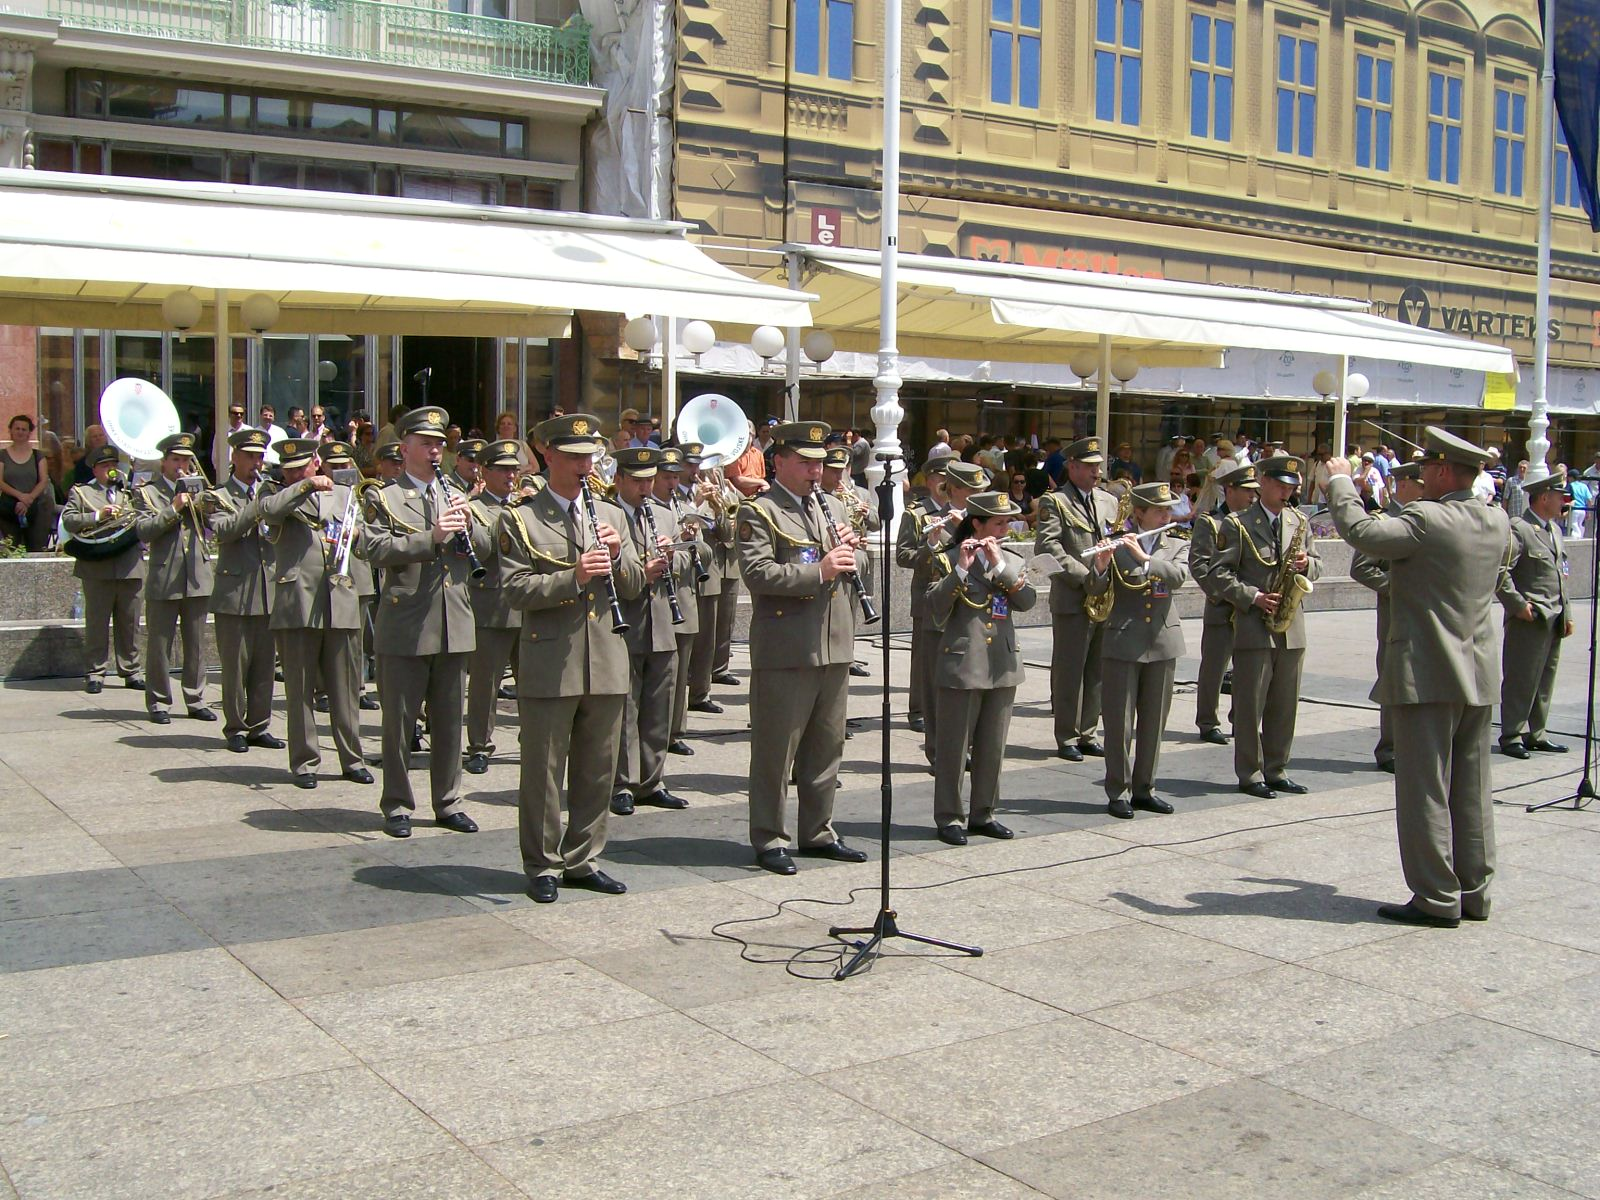 Croatian Armed Forces Band - Wikipedia